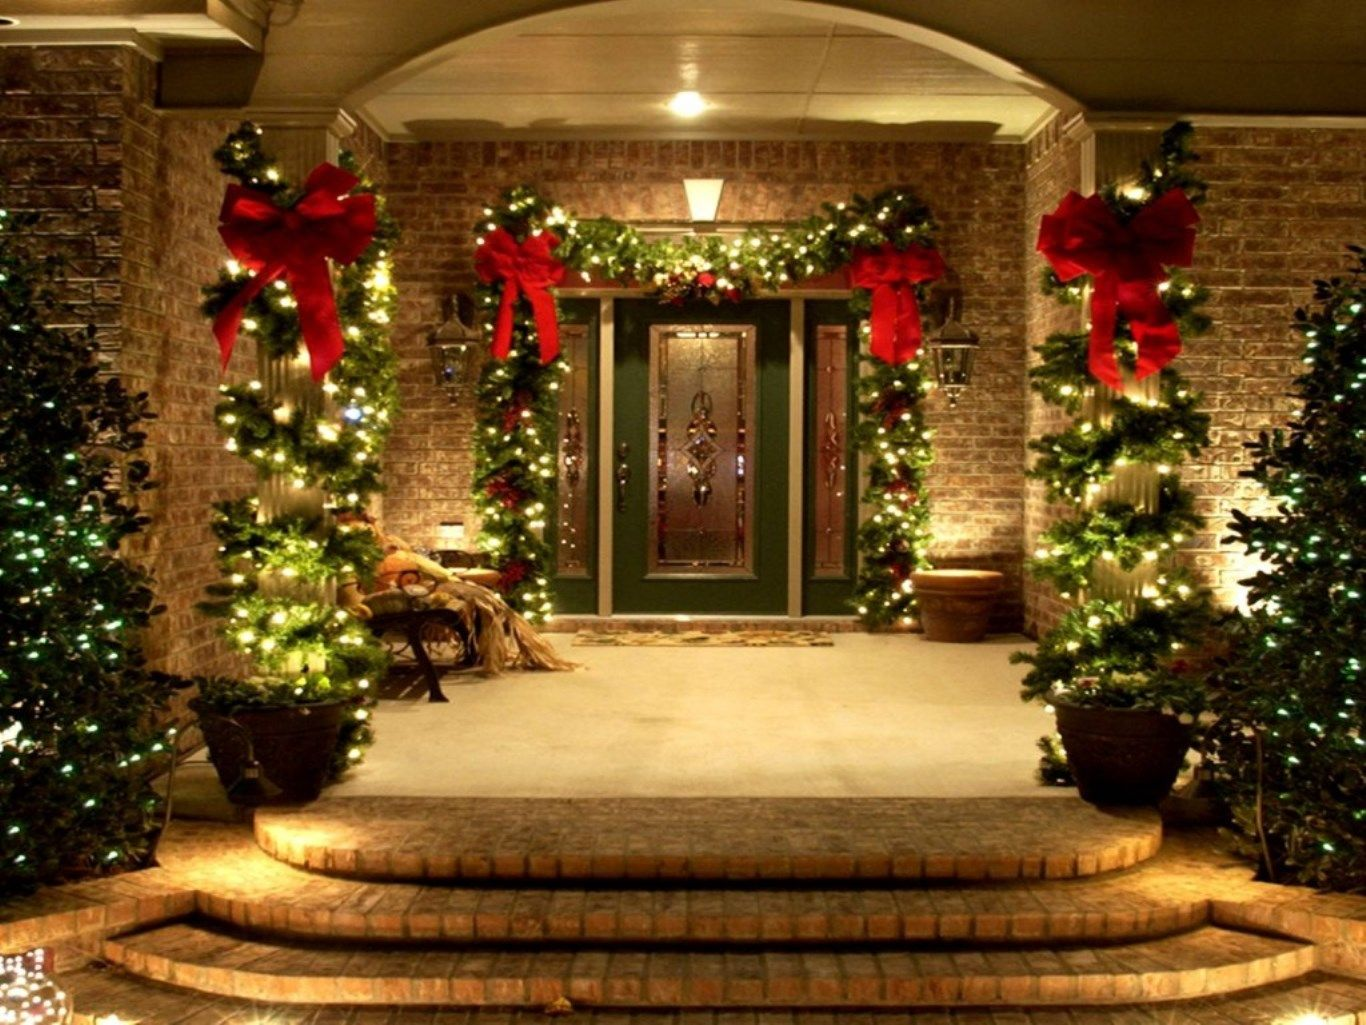 Merveilleux 10 Tips For Decorating Your Home For Sale During The Holidays  #realestatetips #prep2sell #